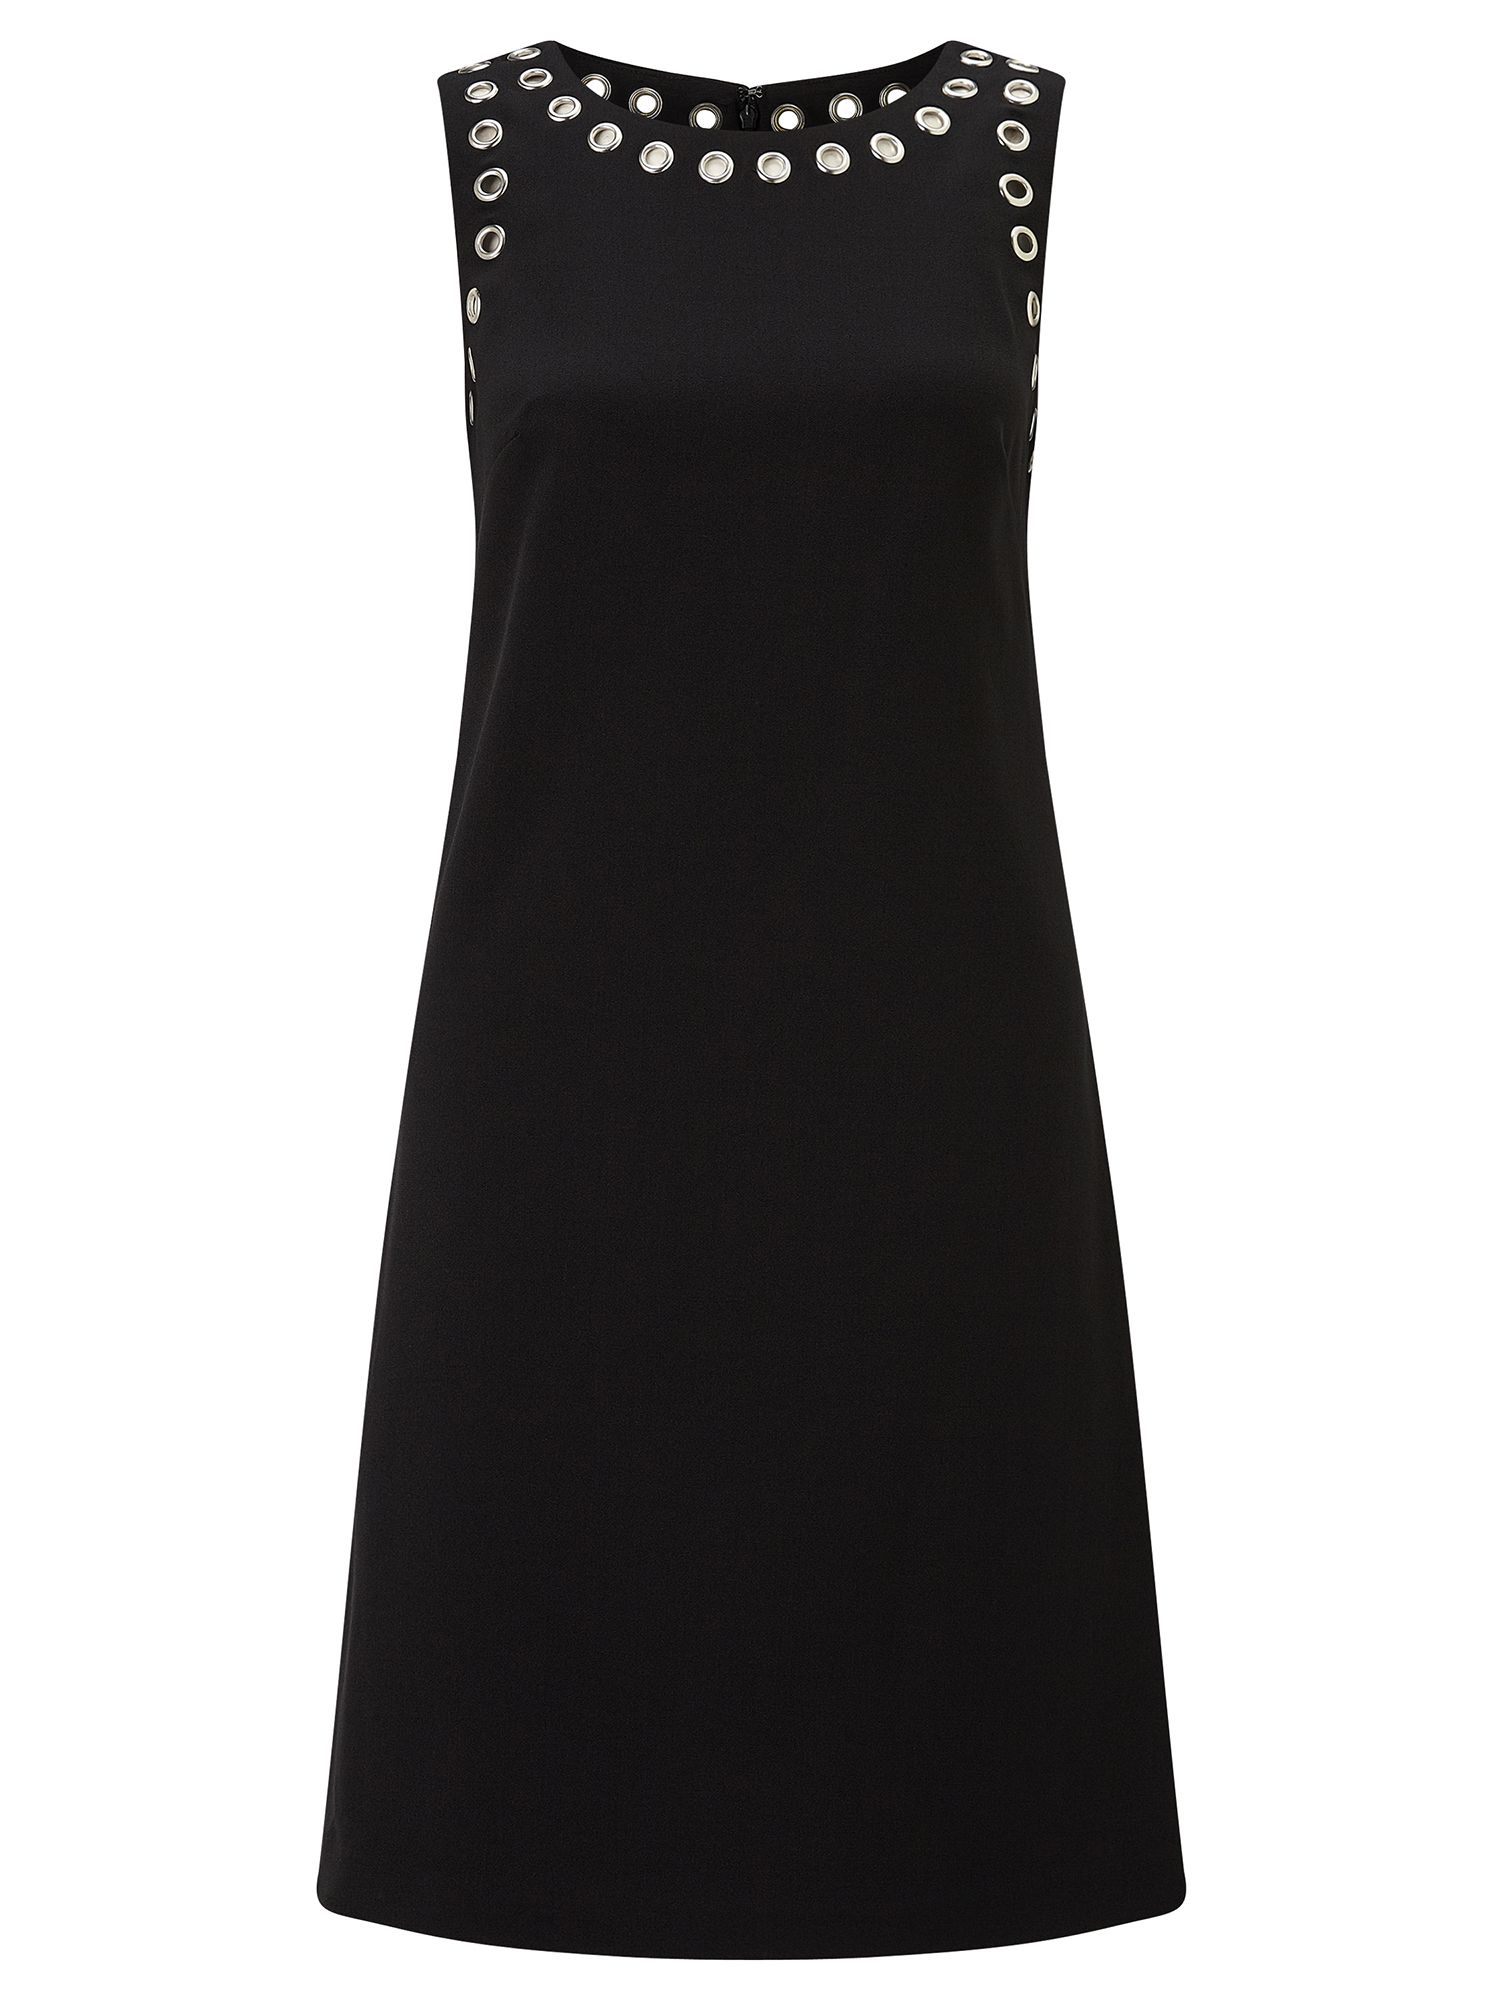 Adrianna Papell Grommet detail shift dress, Black